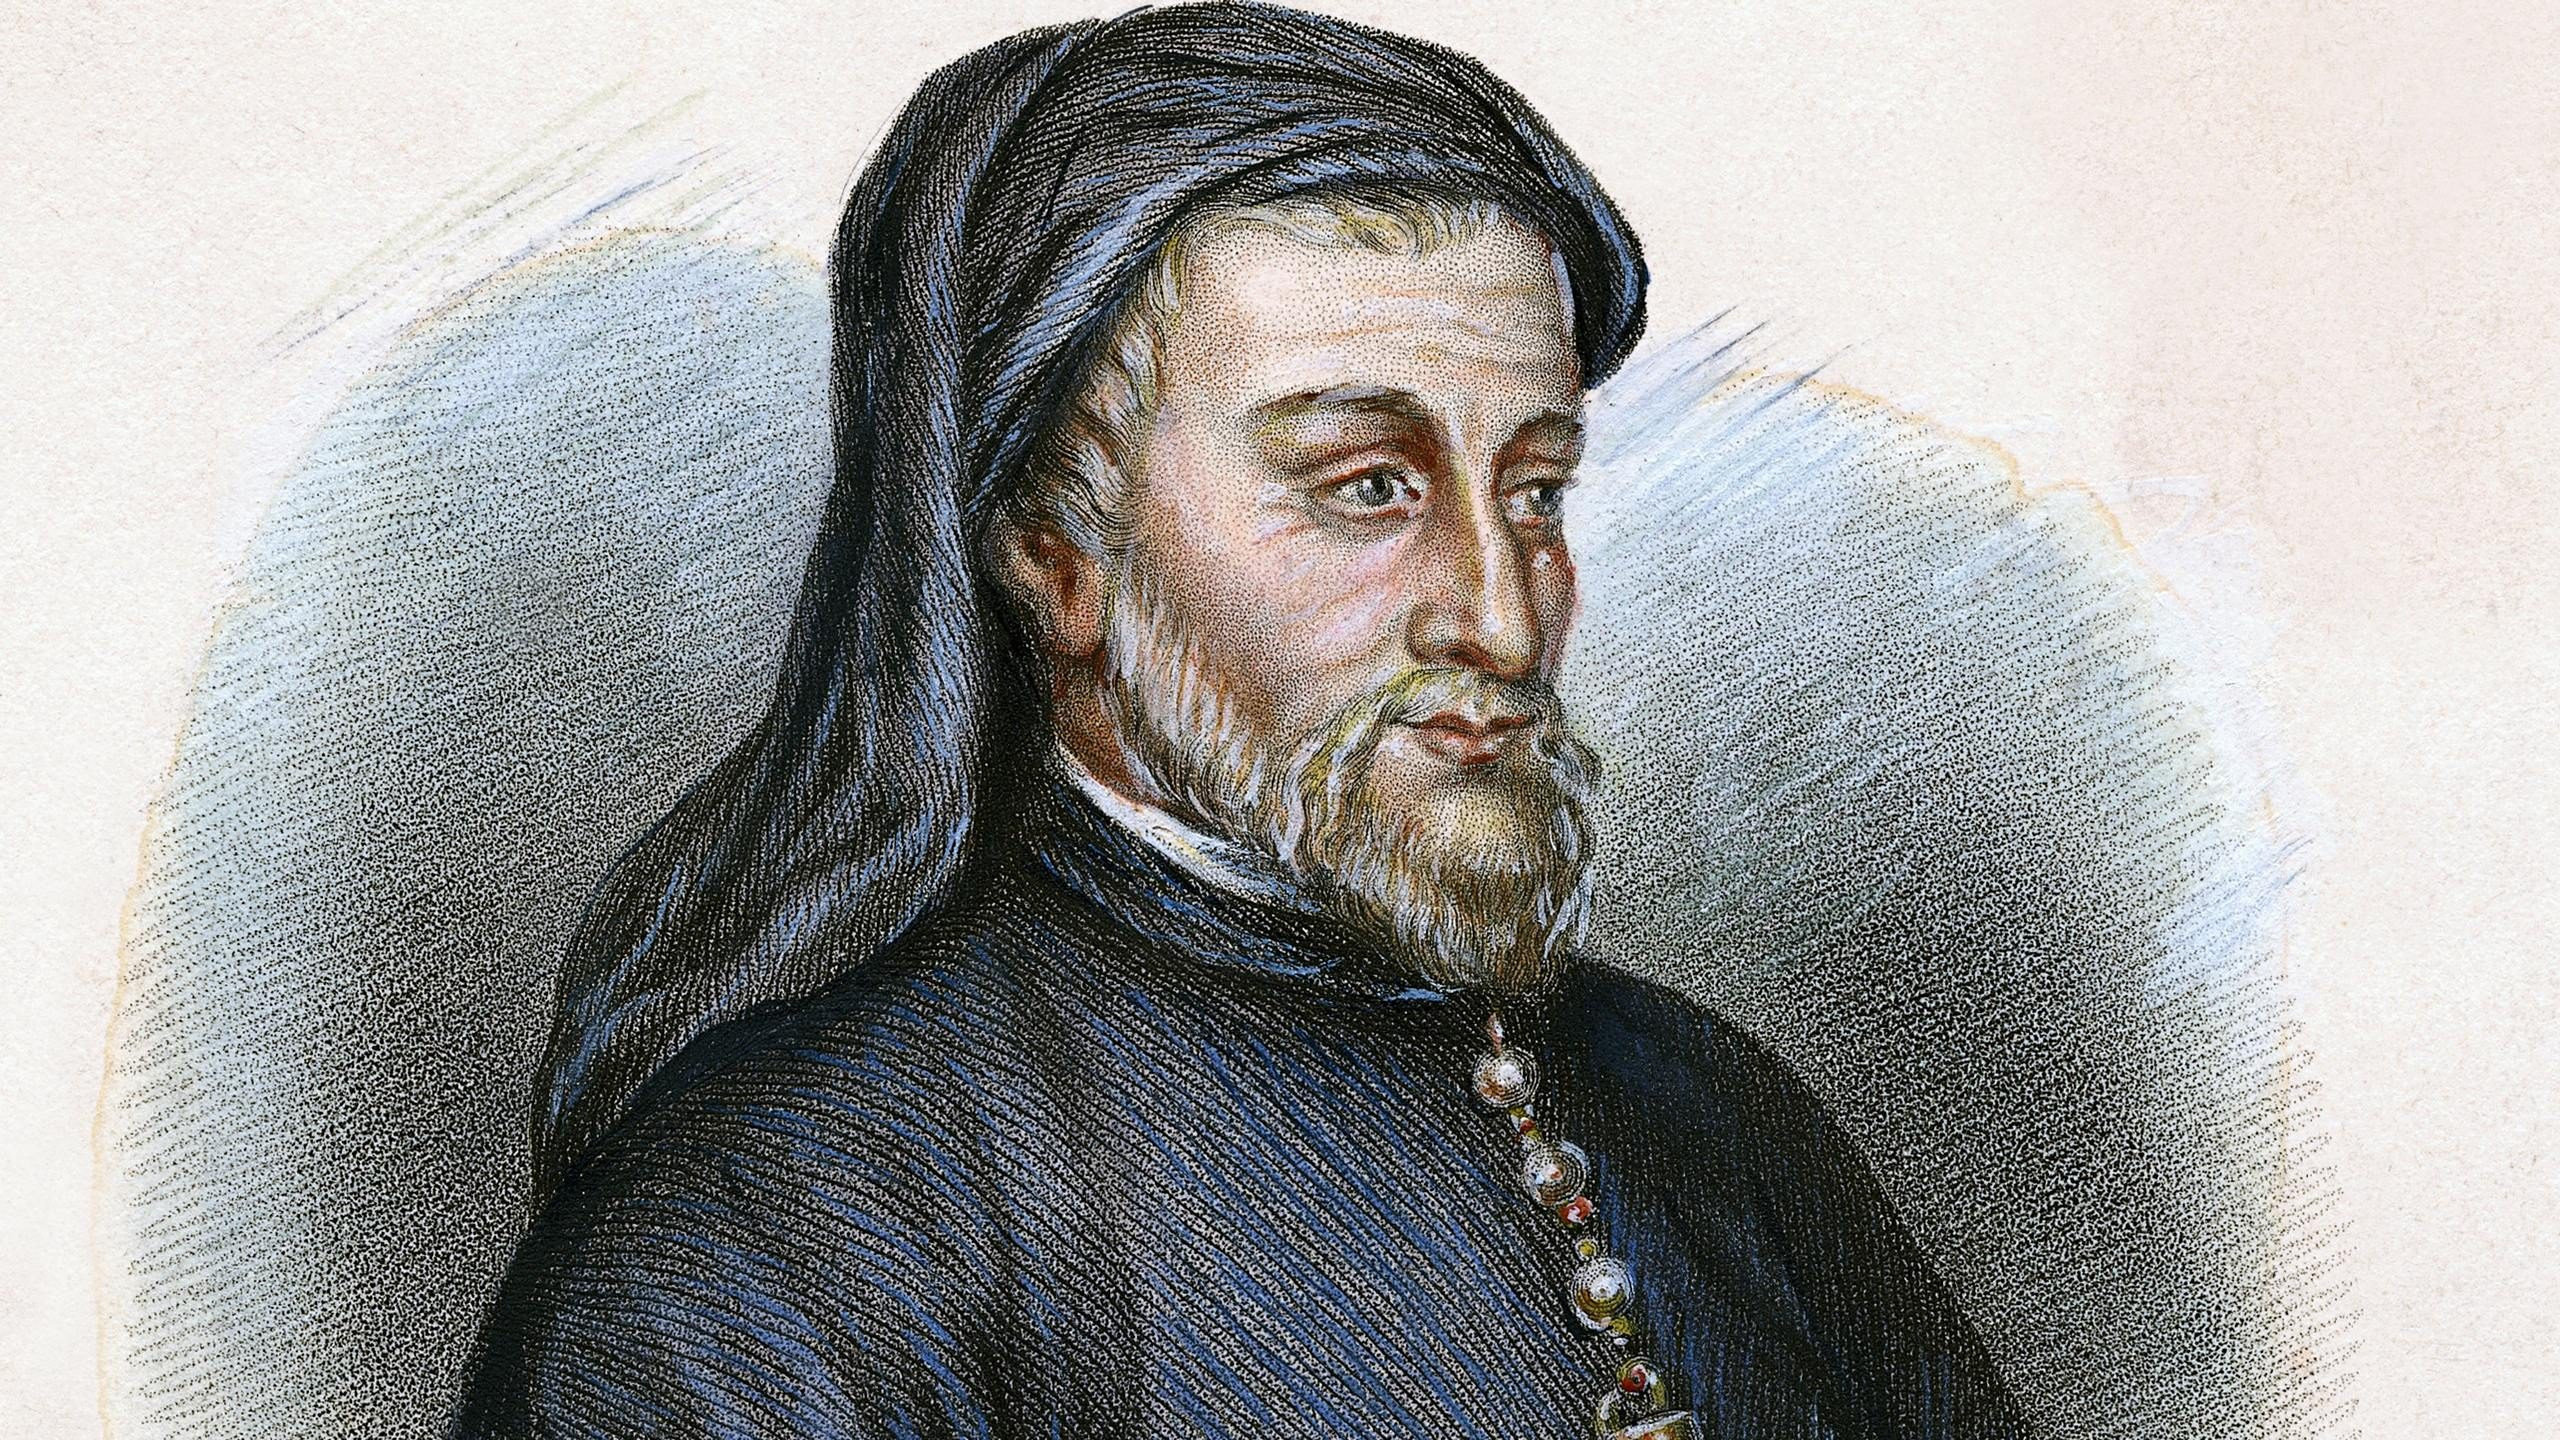 Geoffrey_Chaucer_-_The_Canterbury_Tales